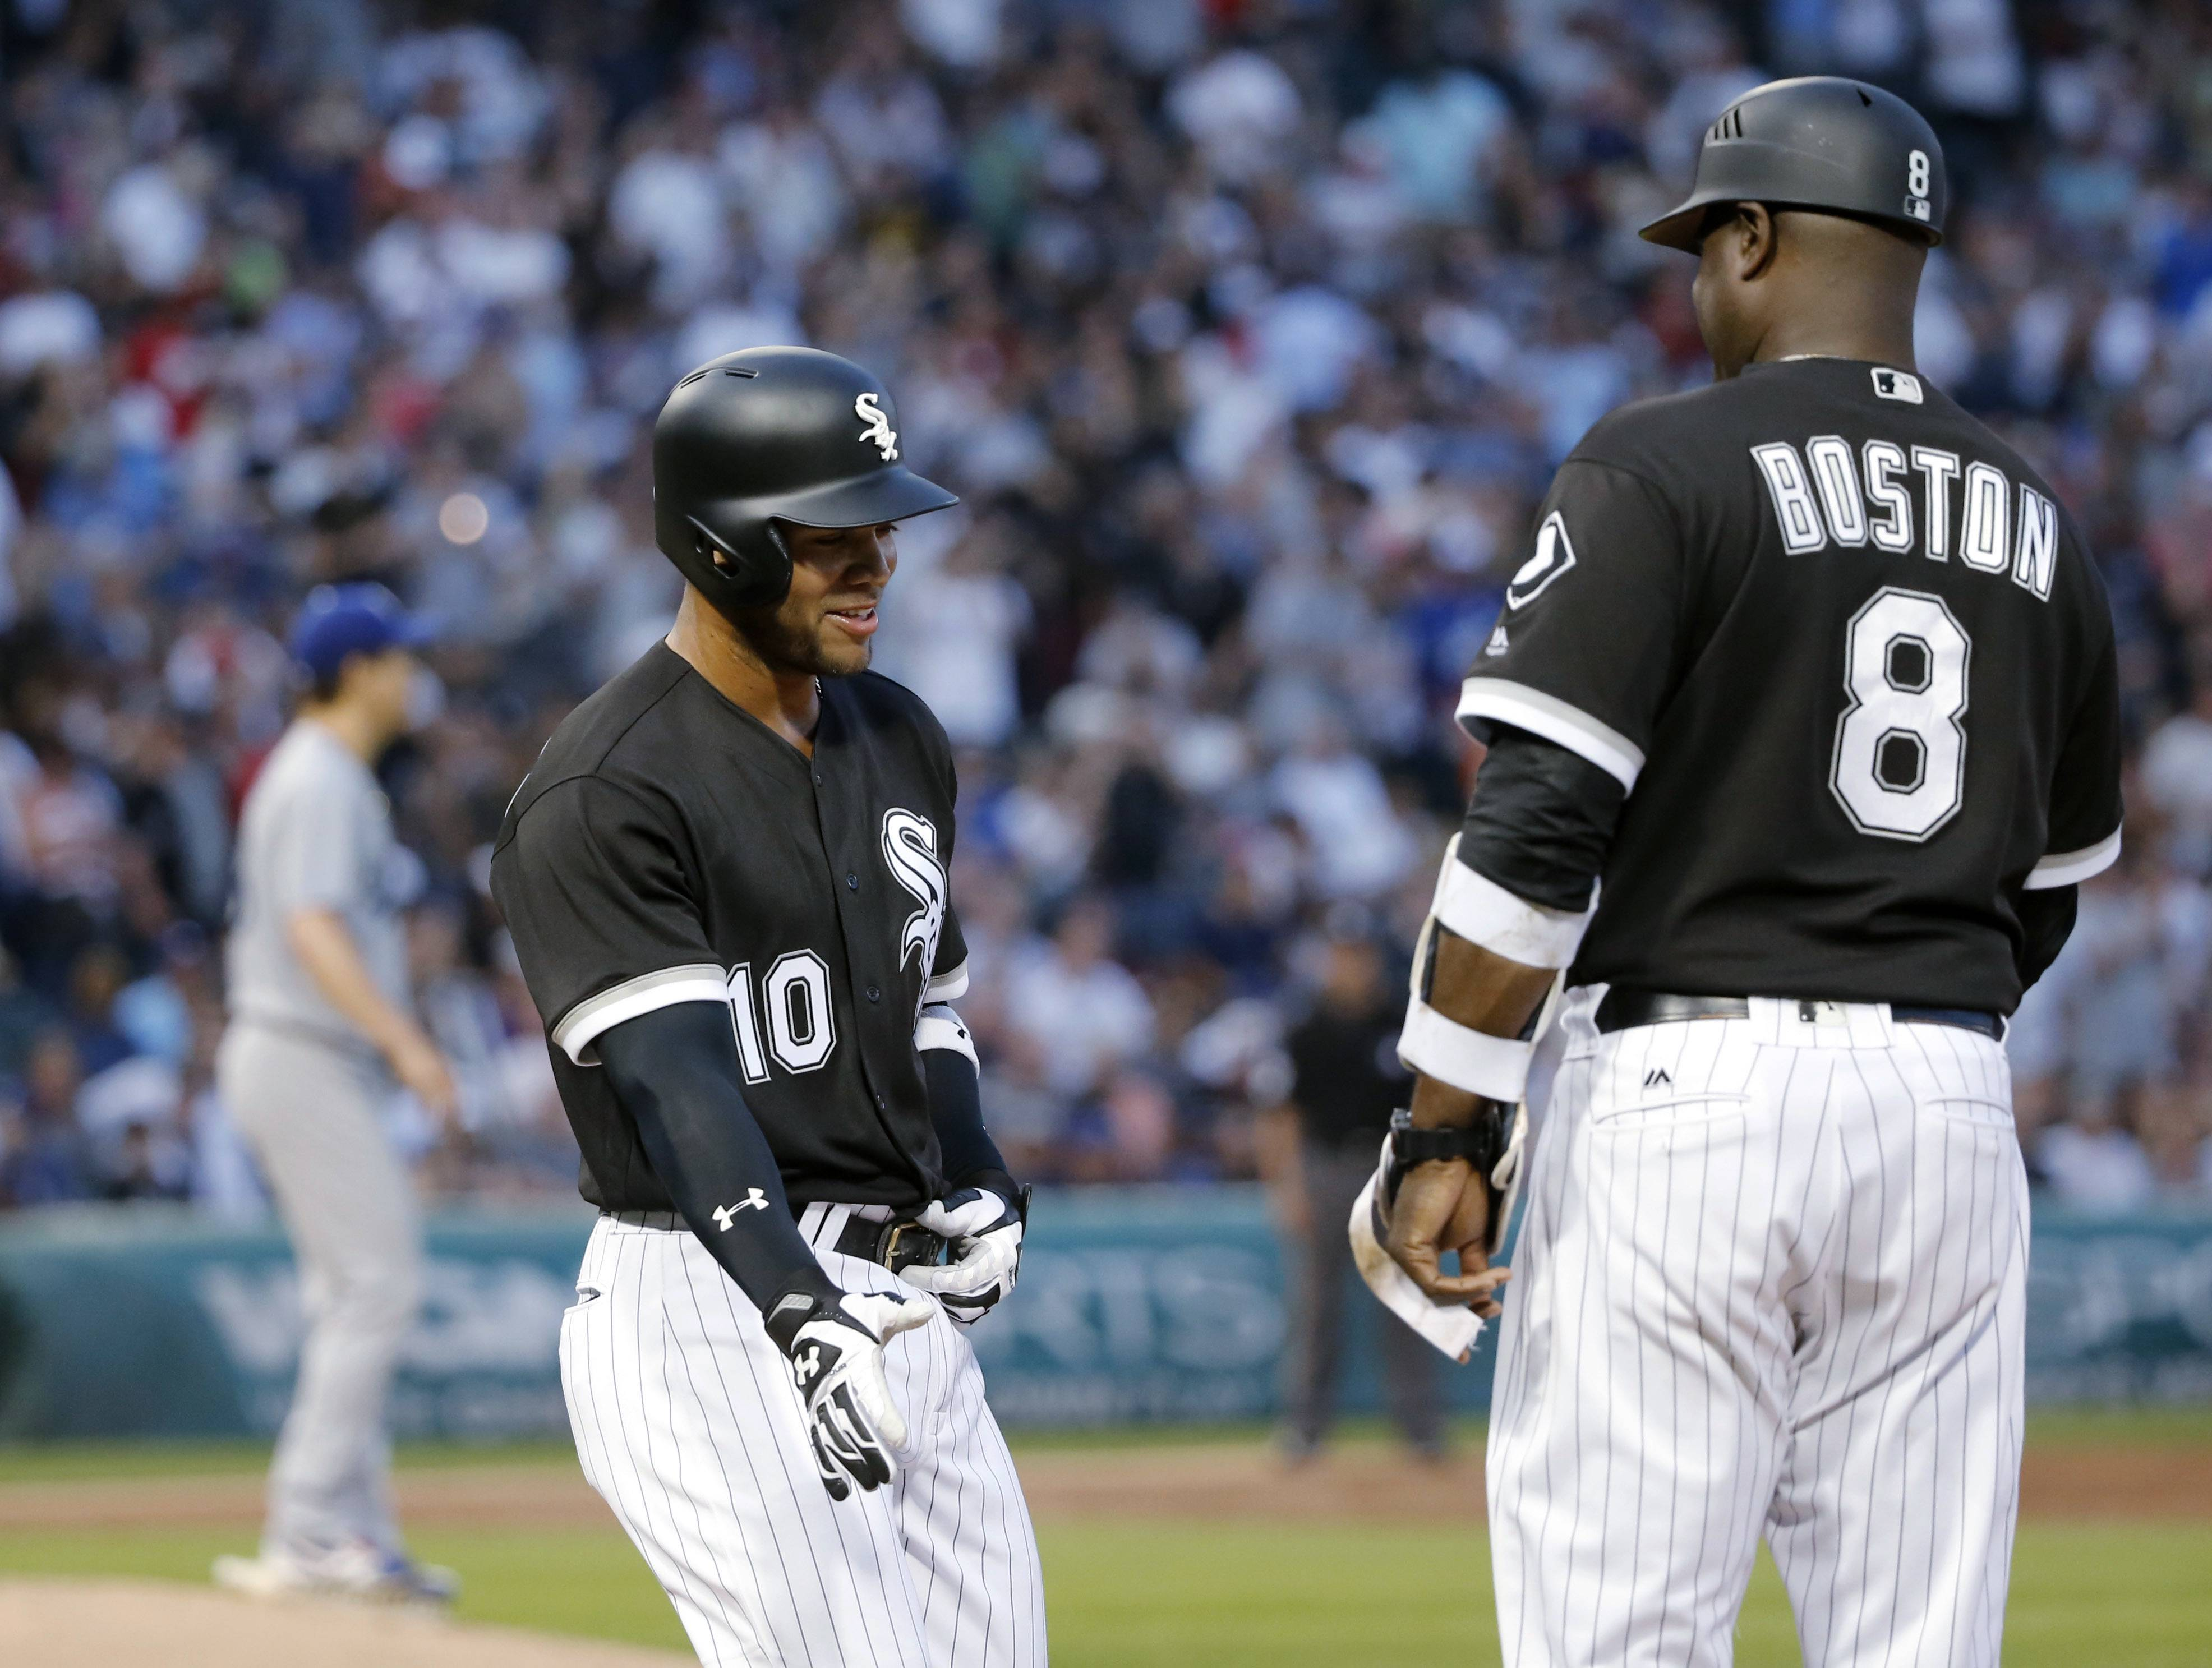 Chicago White Sox's Yoan Moncada smiles at first base coach Daryl Boston after drawing a walk in his first plate appearance on Wednesday. Down 0-2 in the count, Moncada worked for a nine-pitch walk.